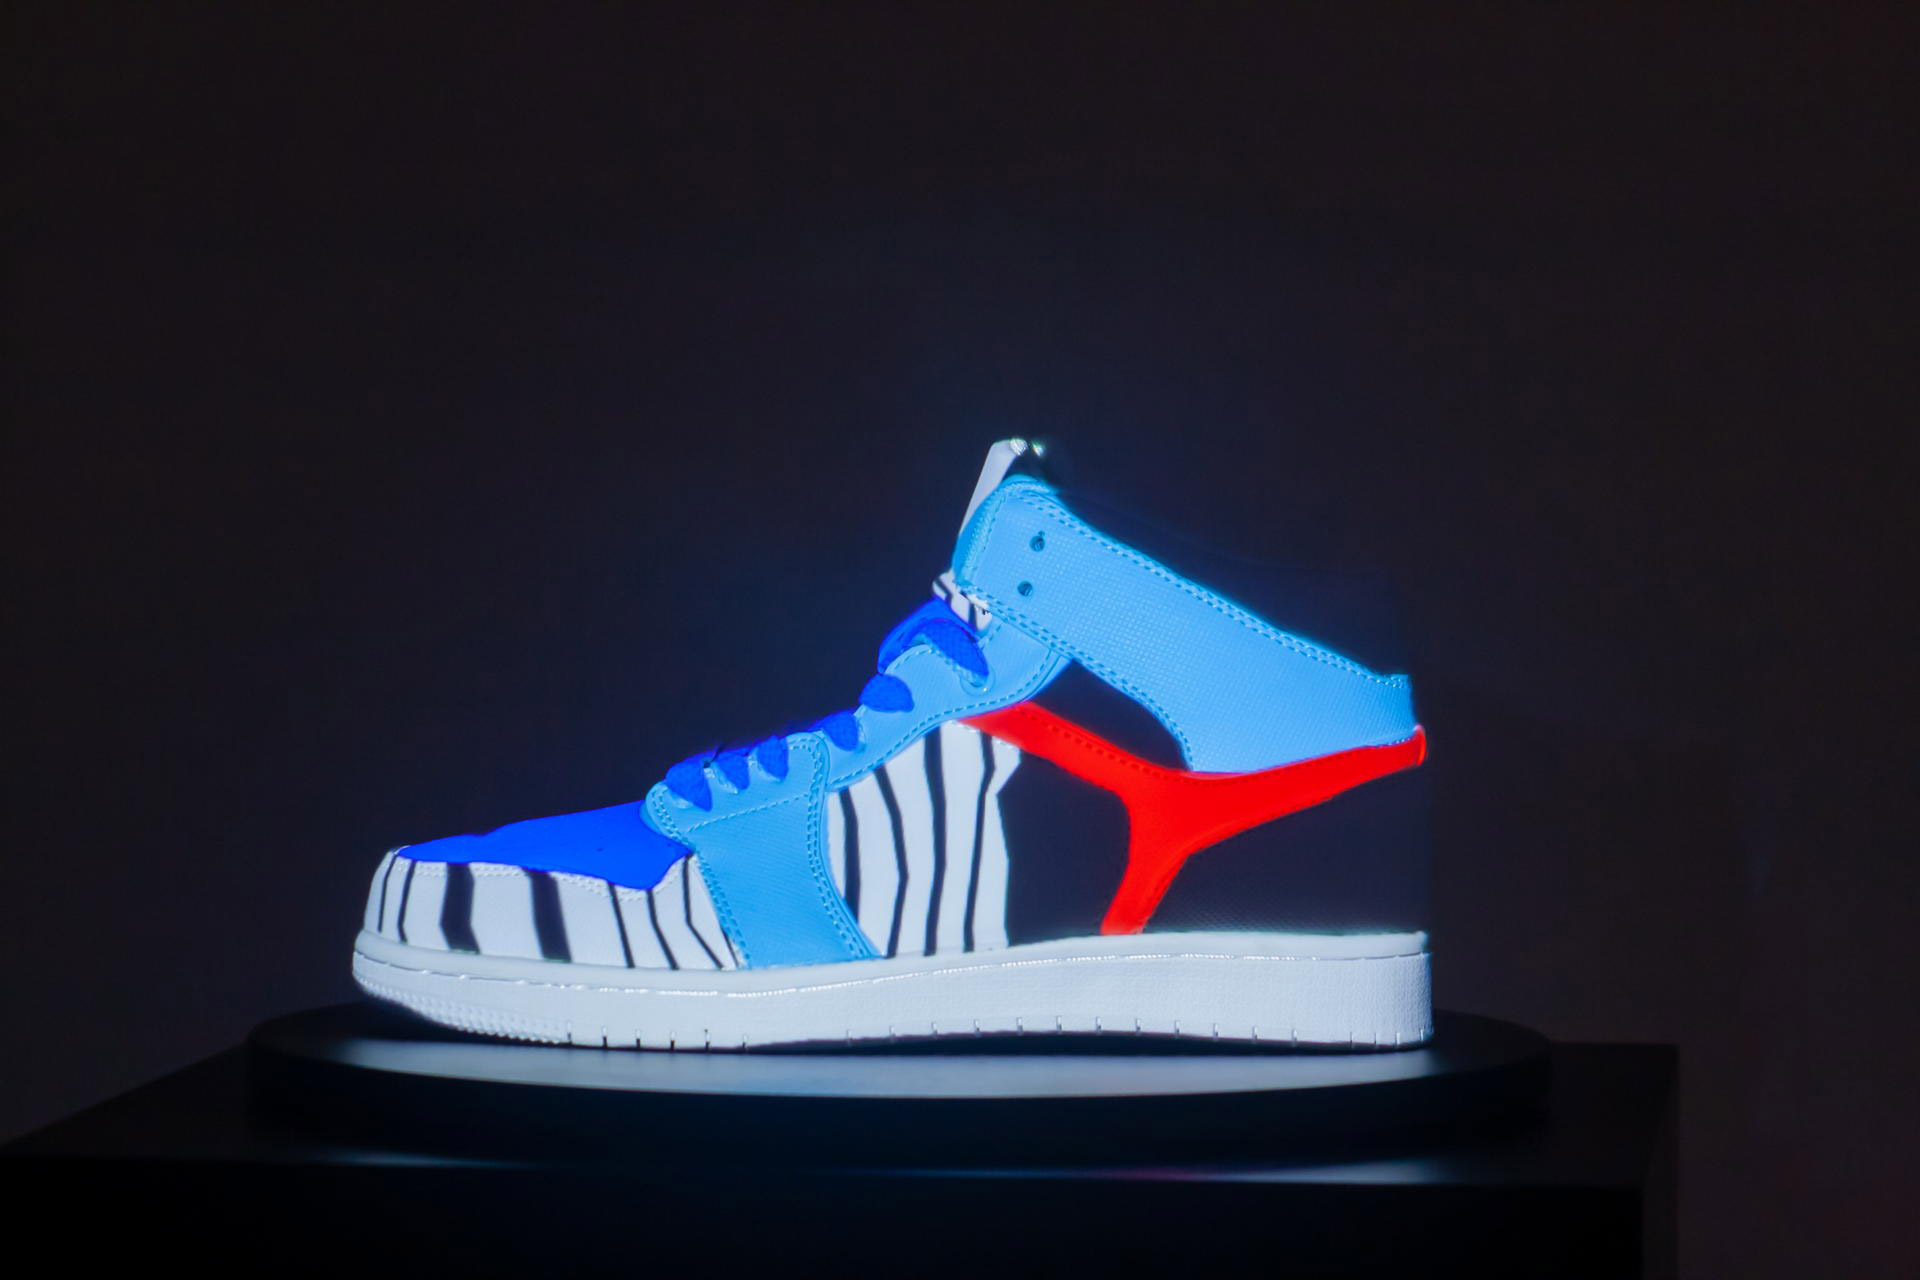 Sneaker_Vase_Projection_pong_li_5